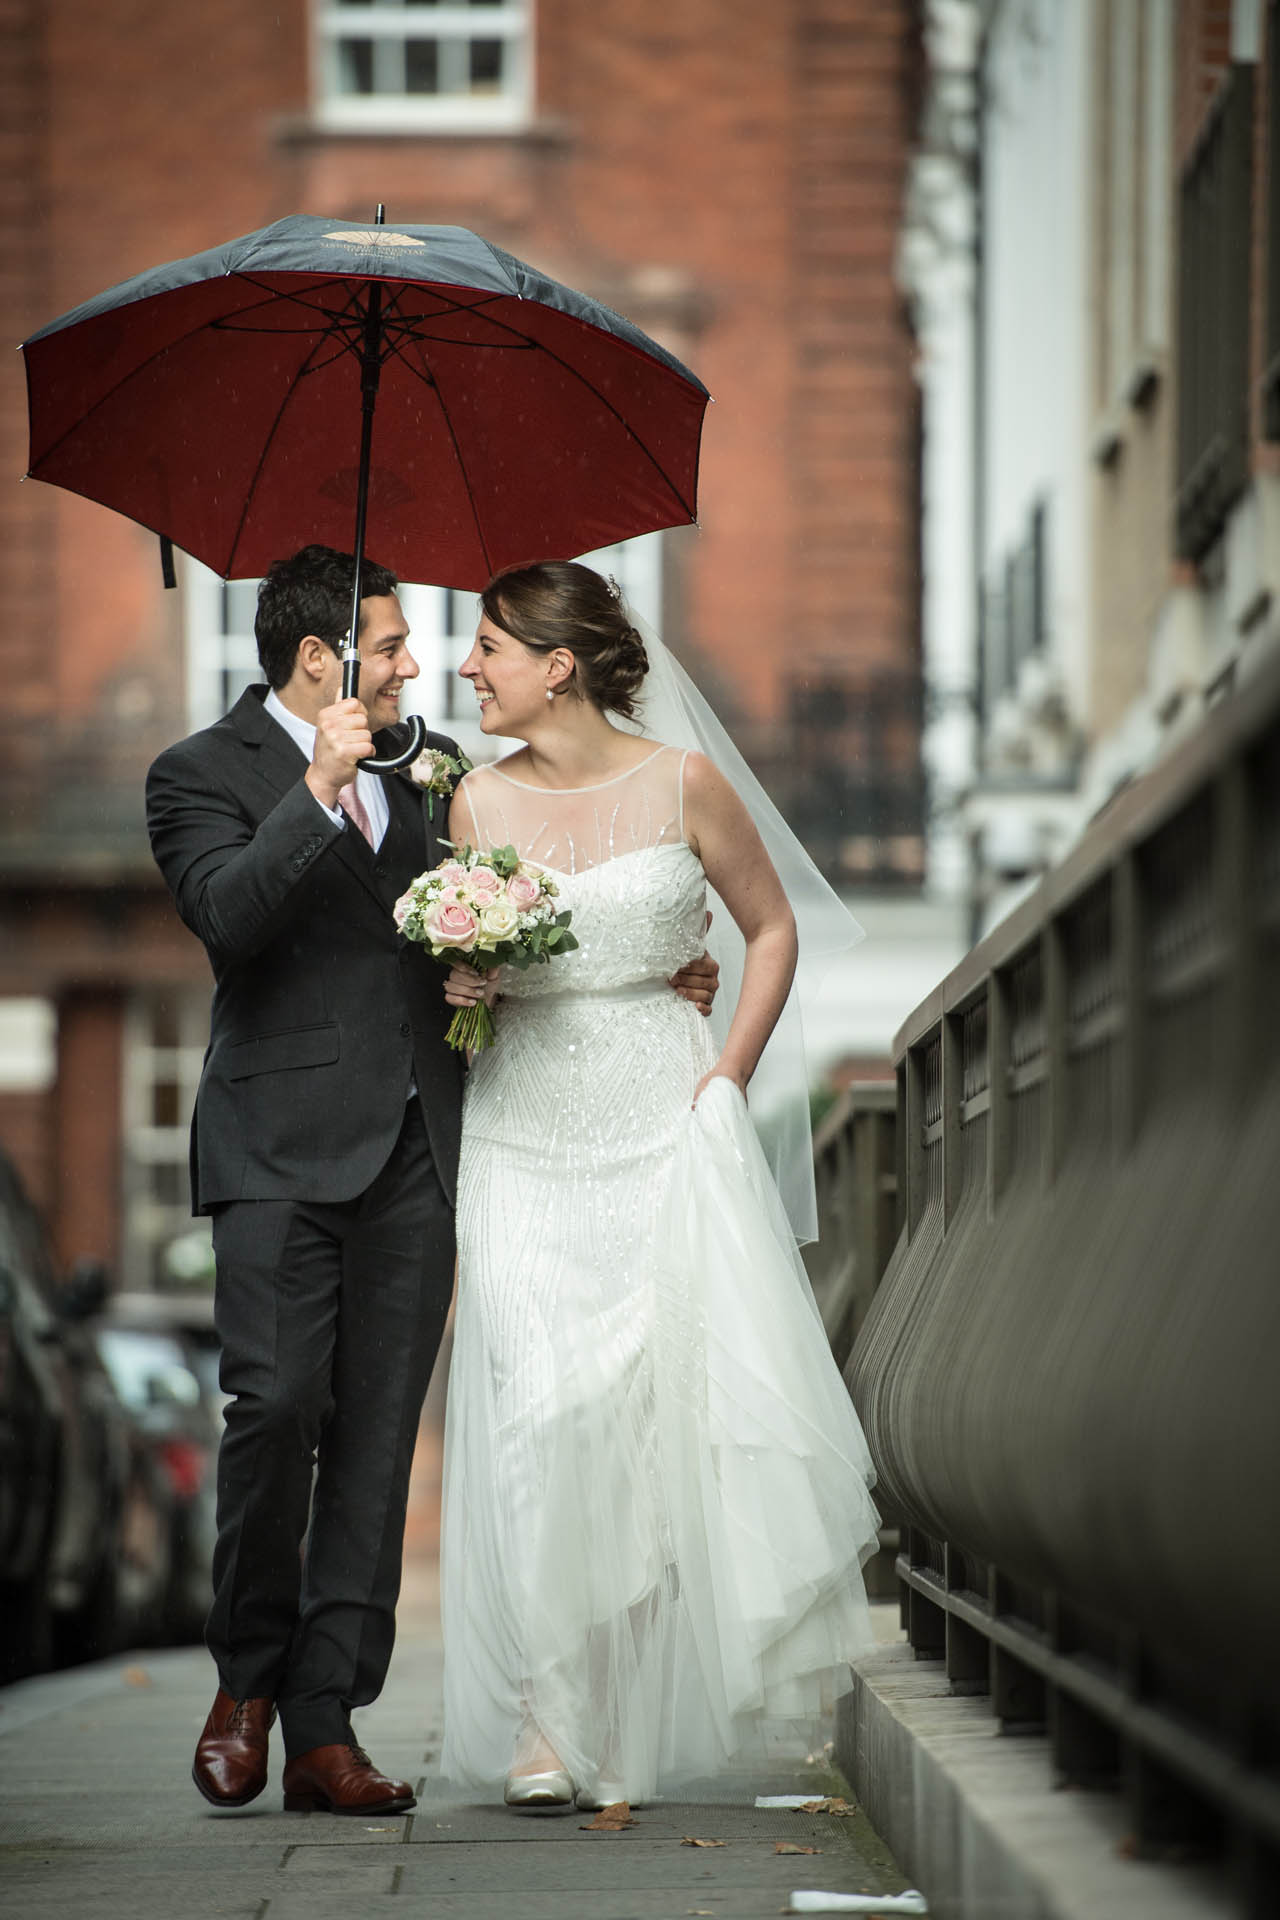 The Dorchester Hotel, London UK Elopement Couple Image | This couple doesn't mind getting caught in the rain